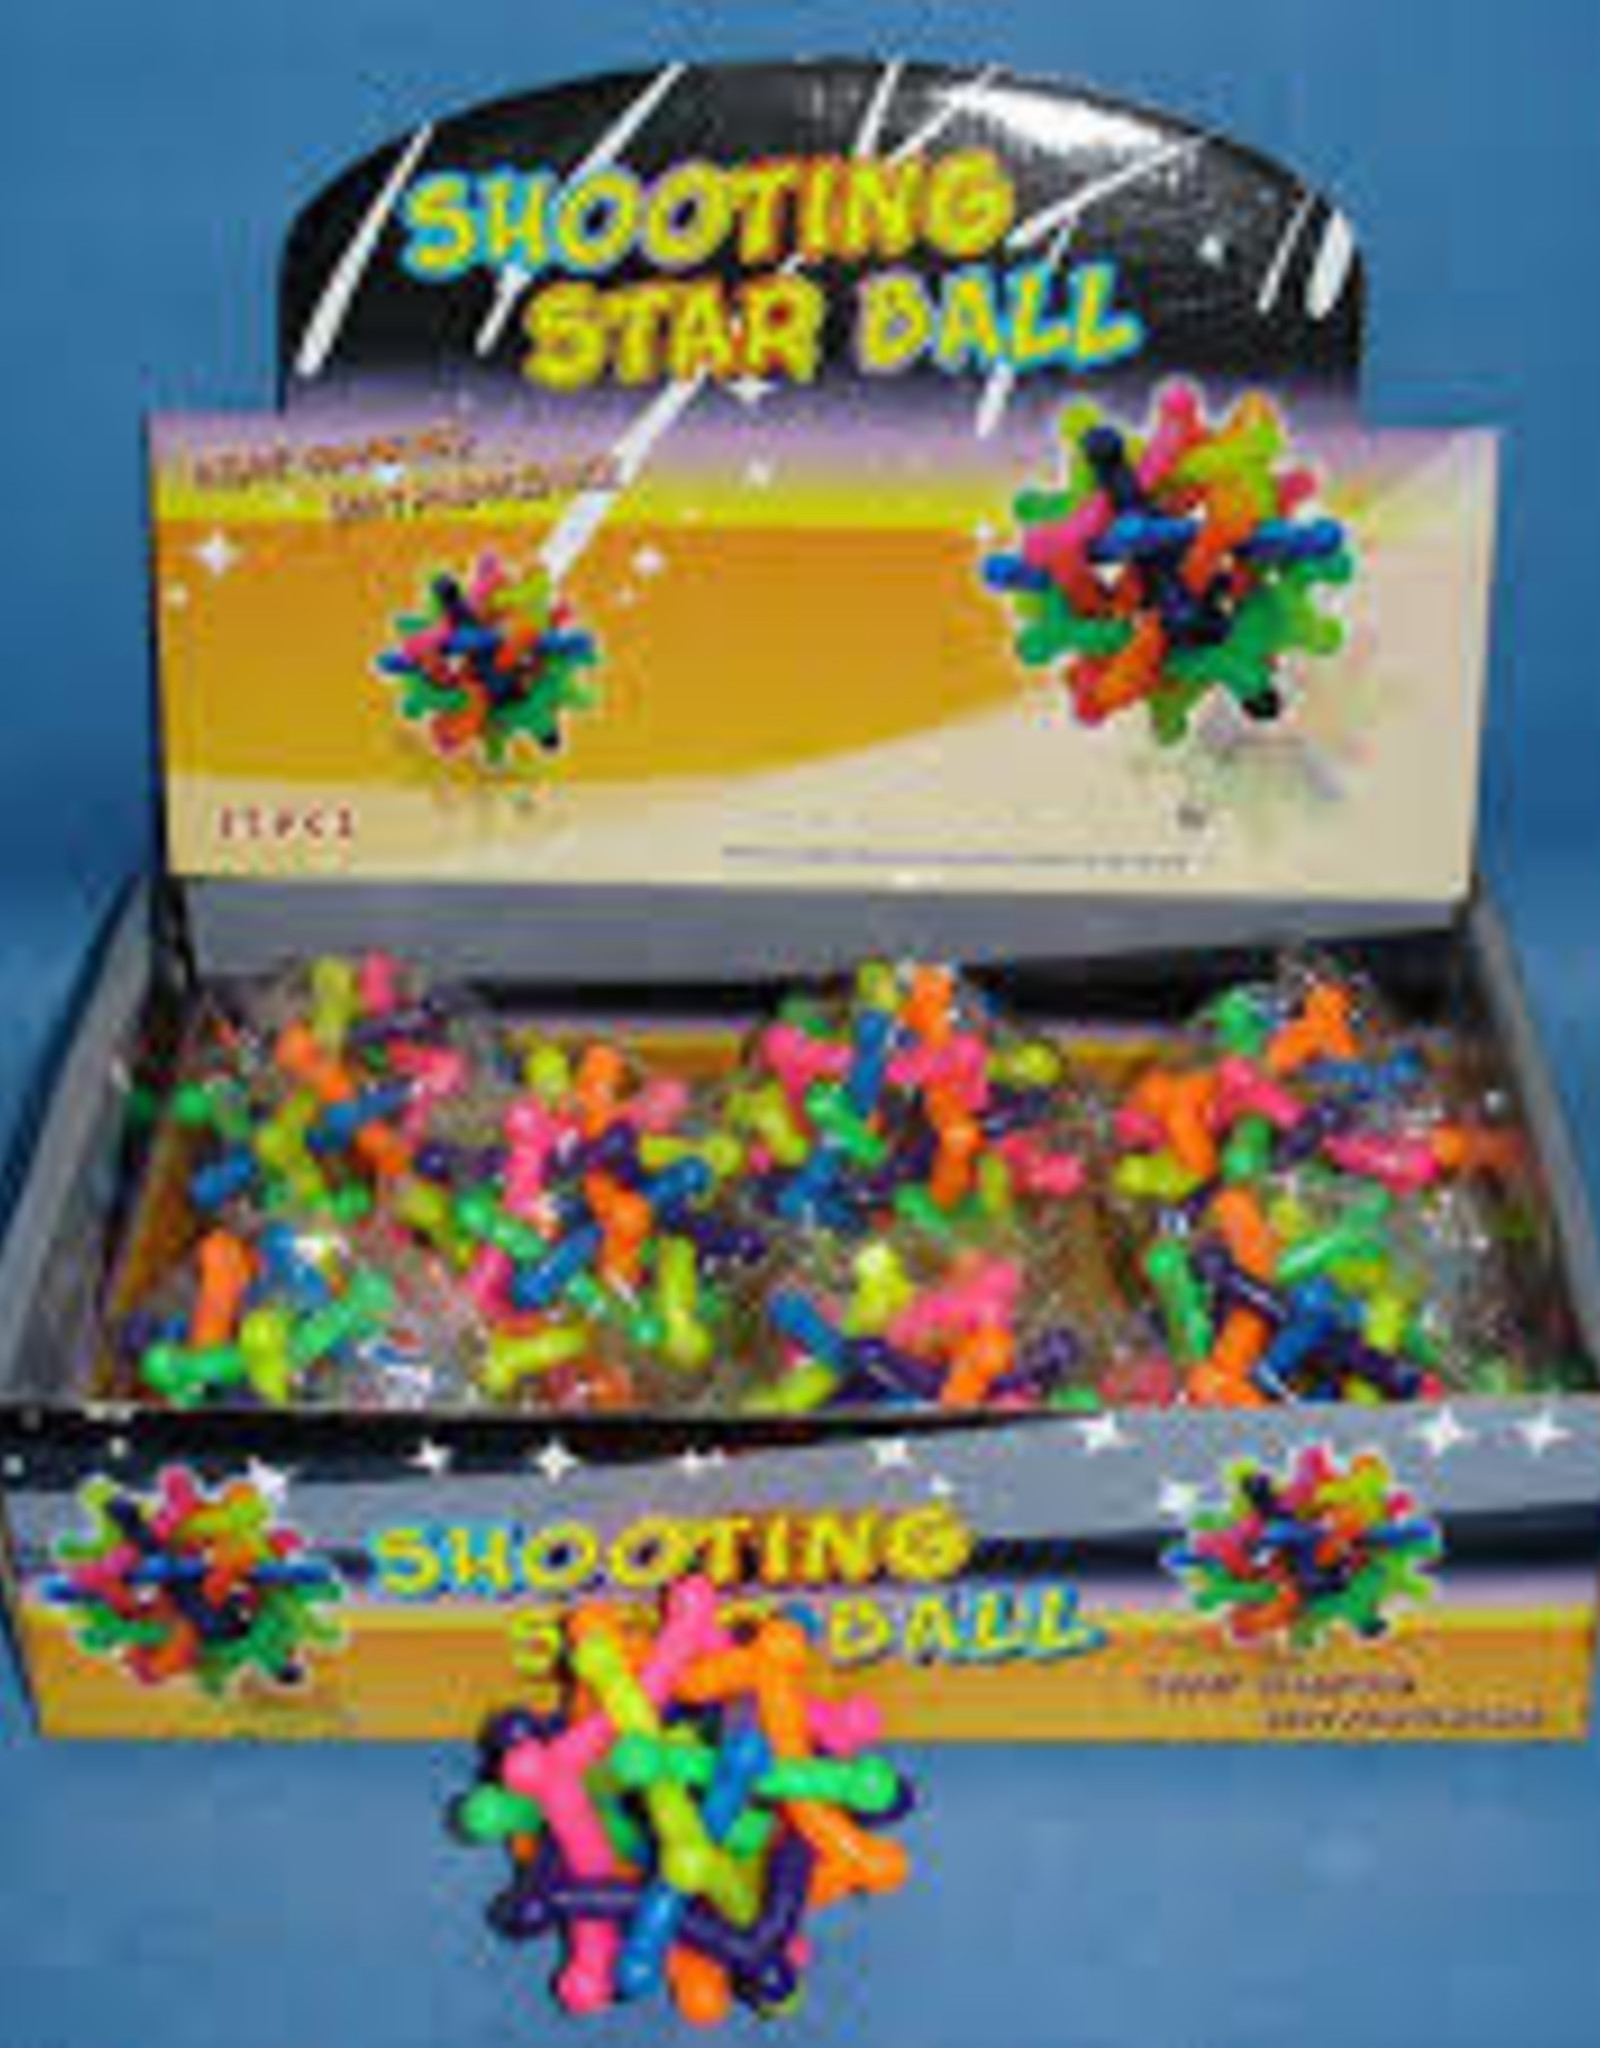 Playwell Shooting Star Ball